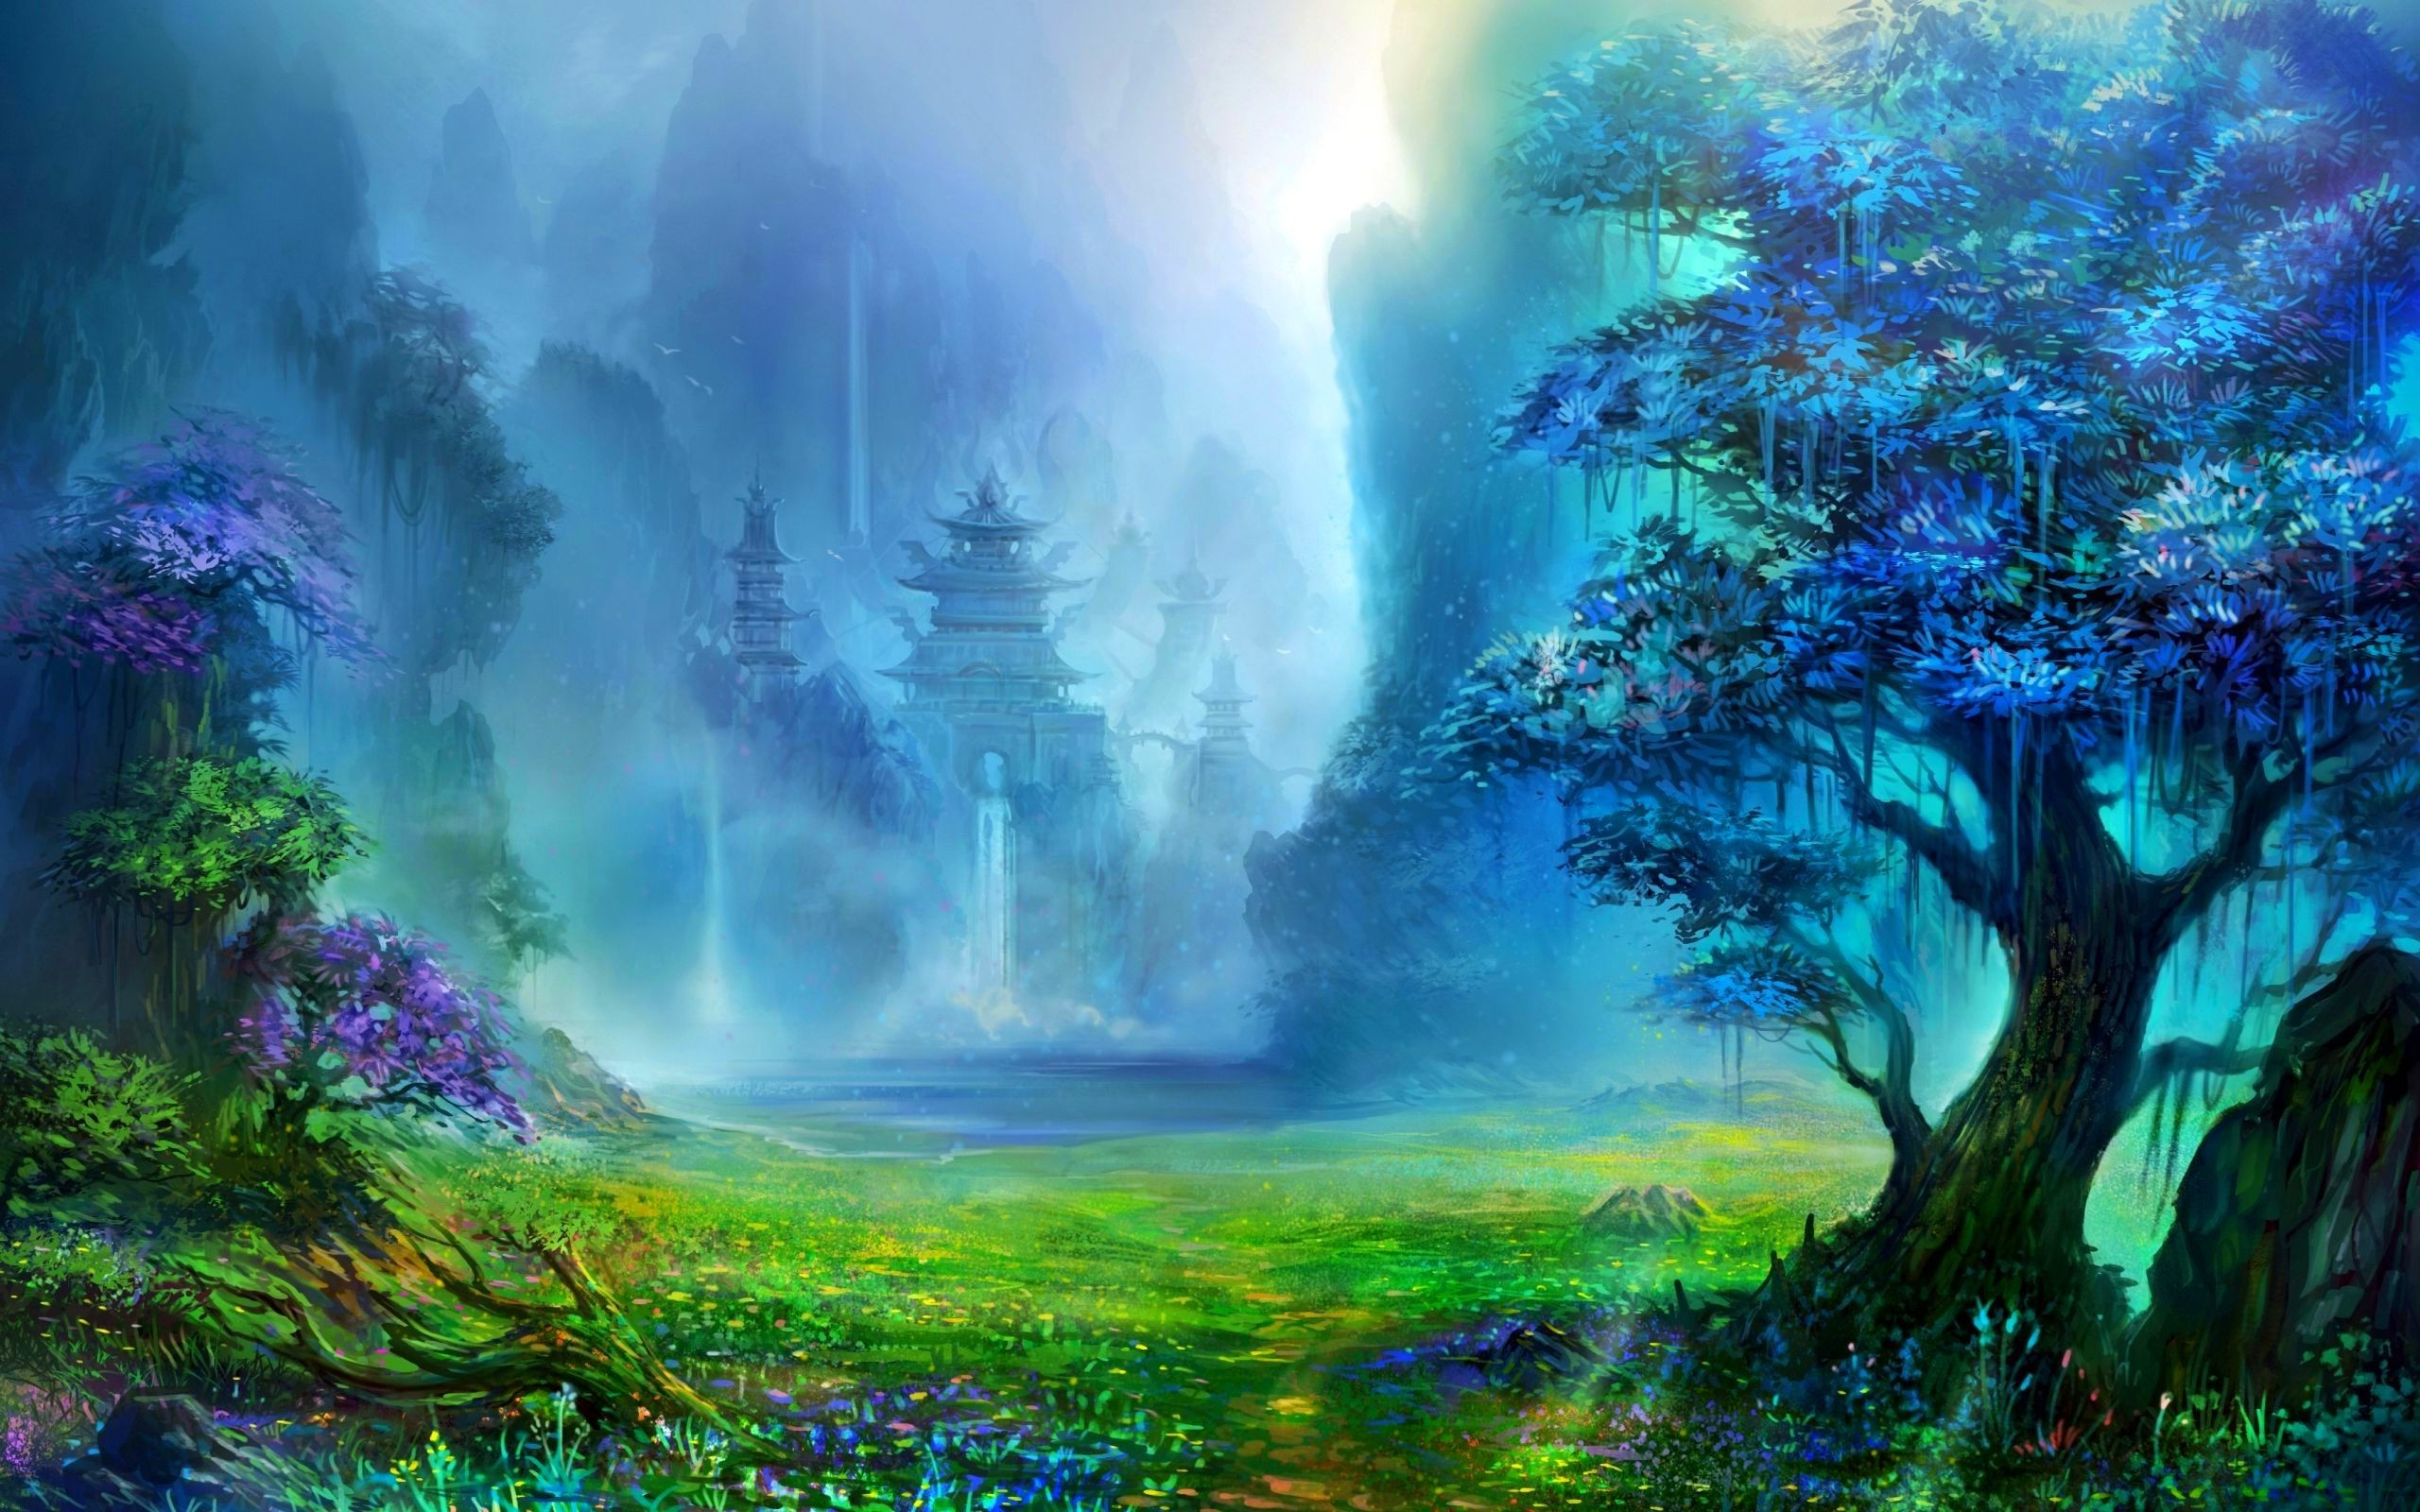 Stunning Hd Fantasy Wallpapers: Fantasy Nature Wallpaper ·① WallpaperTag